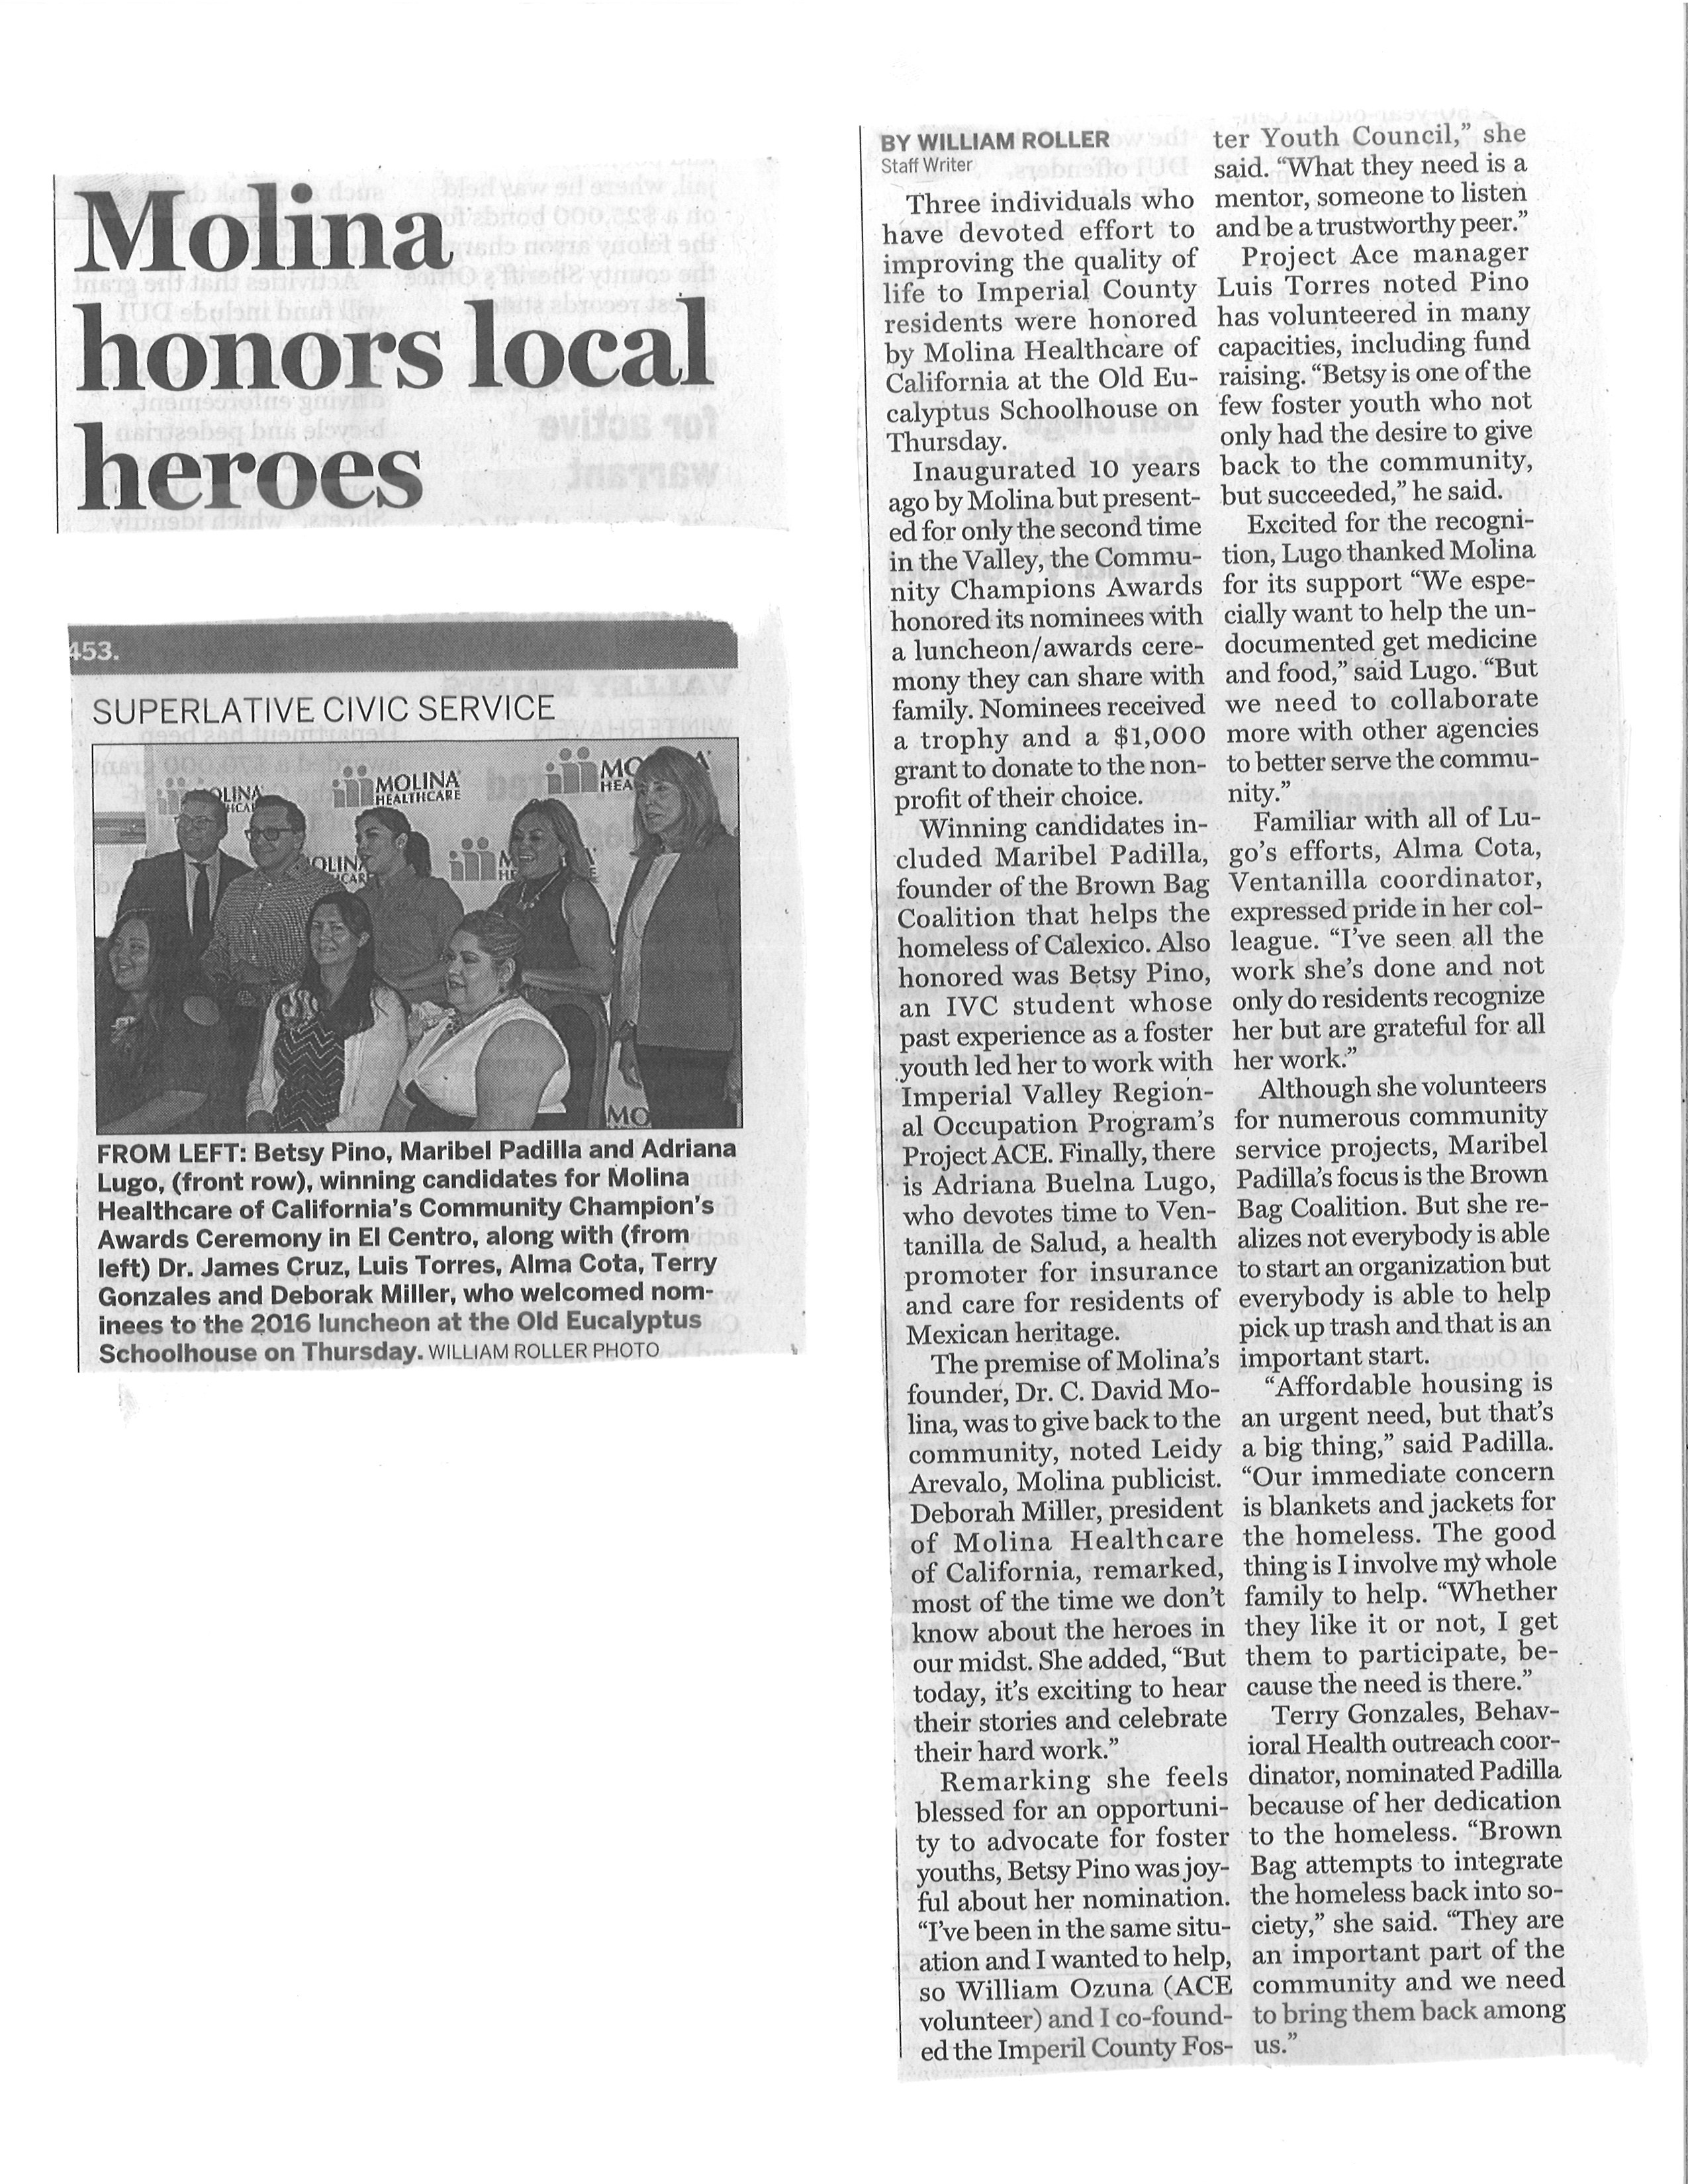 Molina honors local heroes